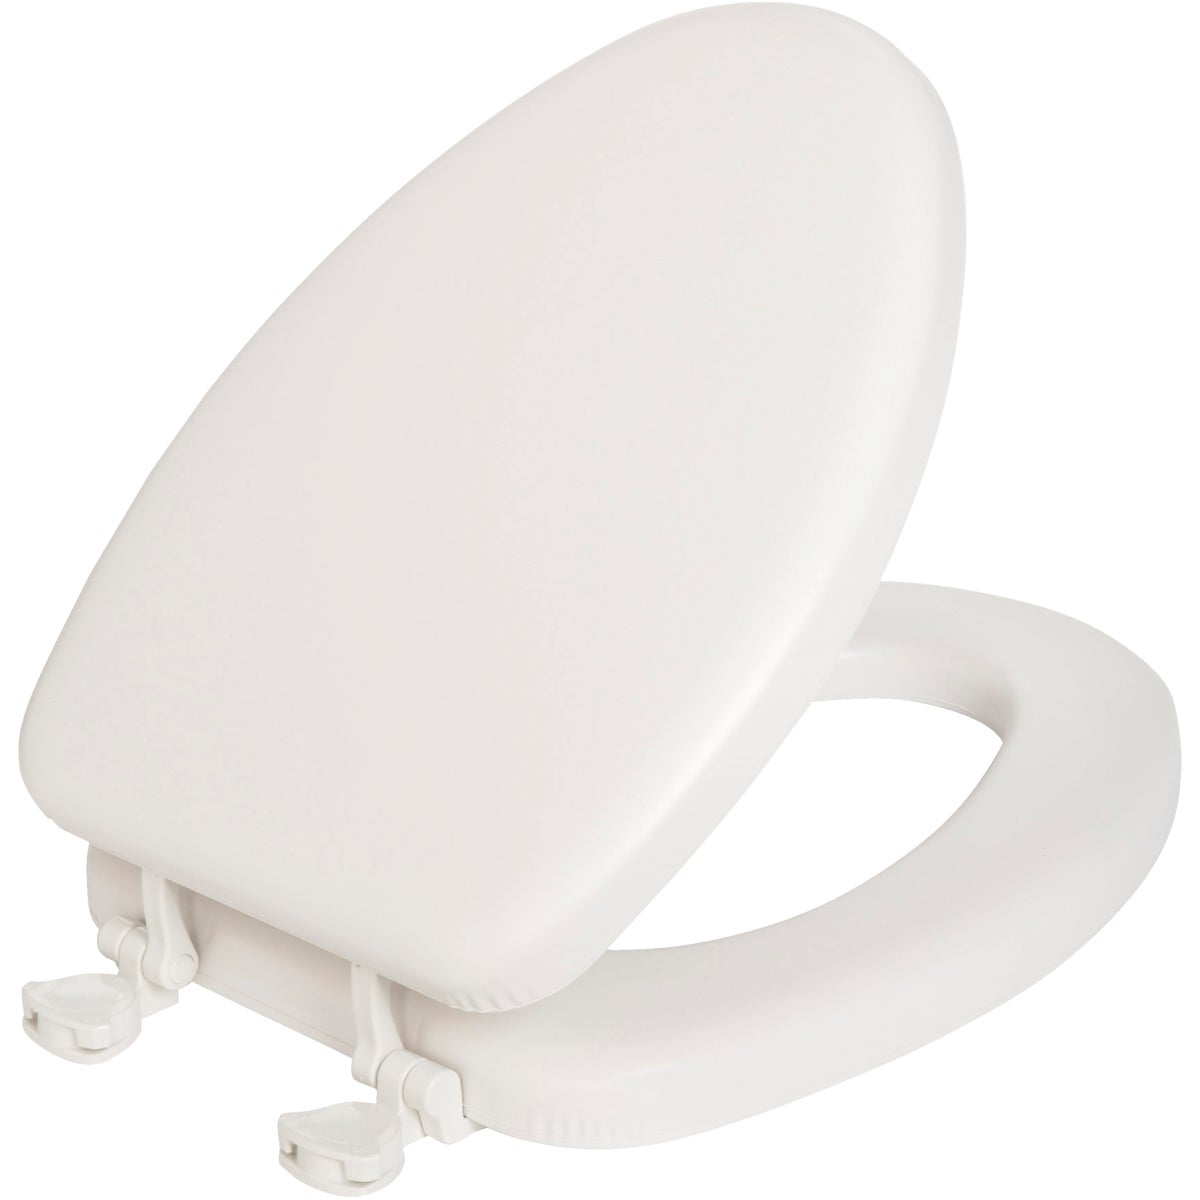 WHT SOFT ELONG SEAT - 113EC-000 by Bemis Mfg